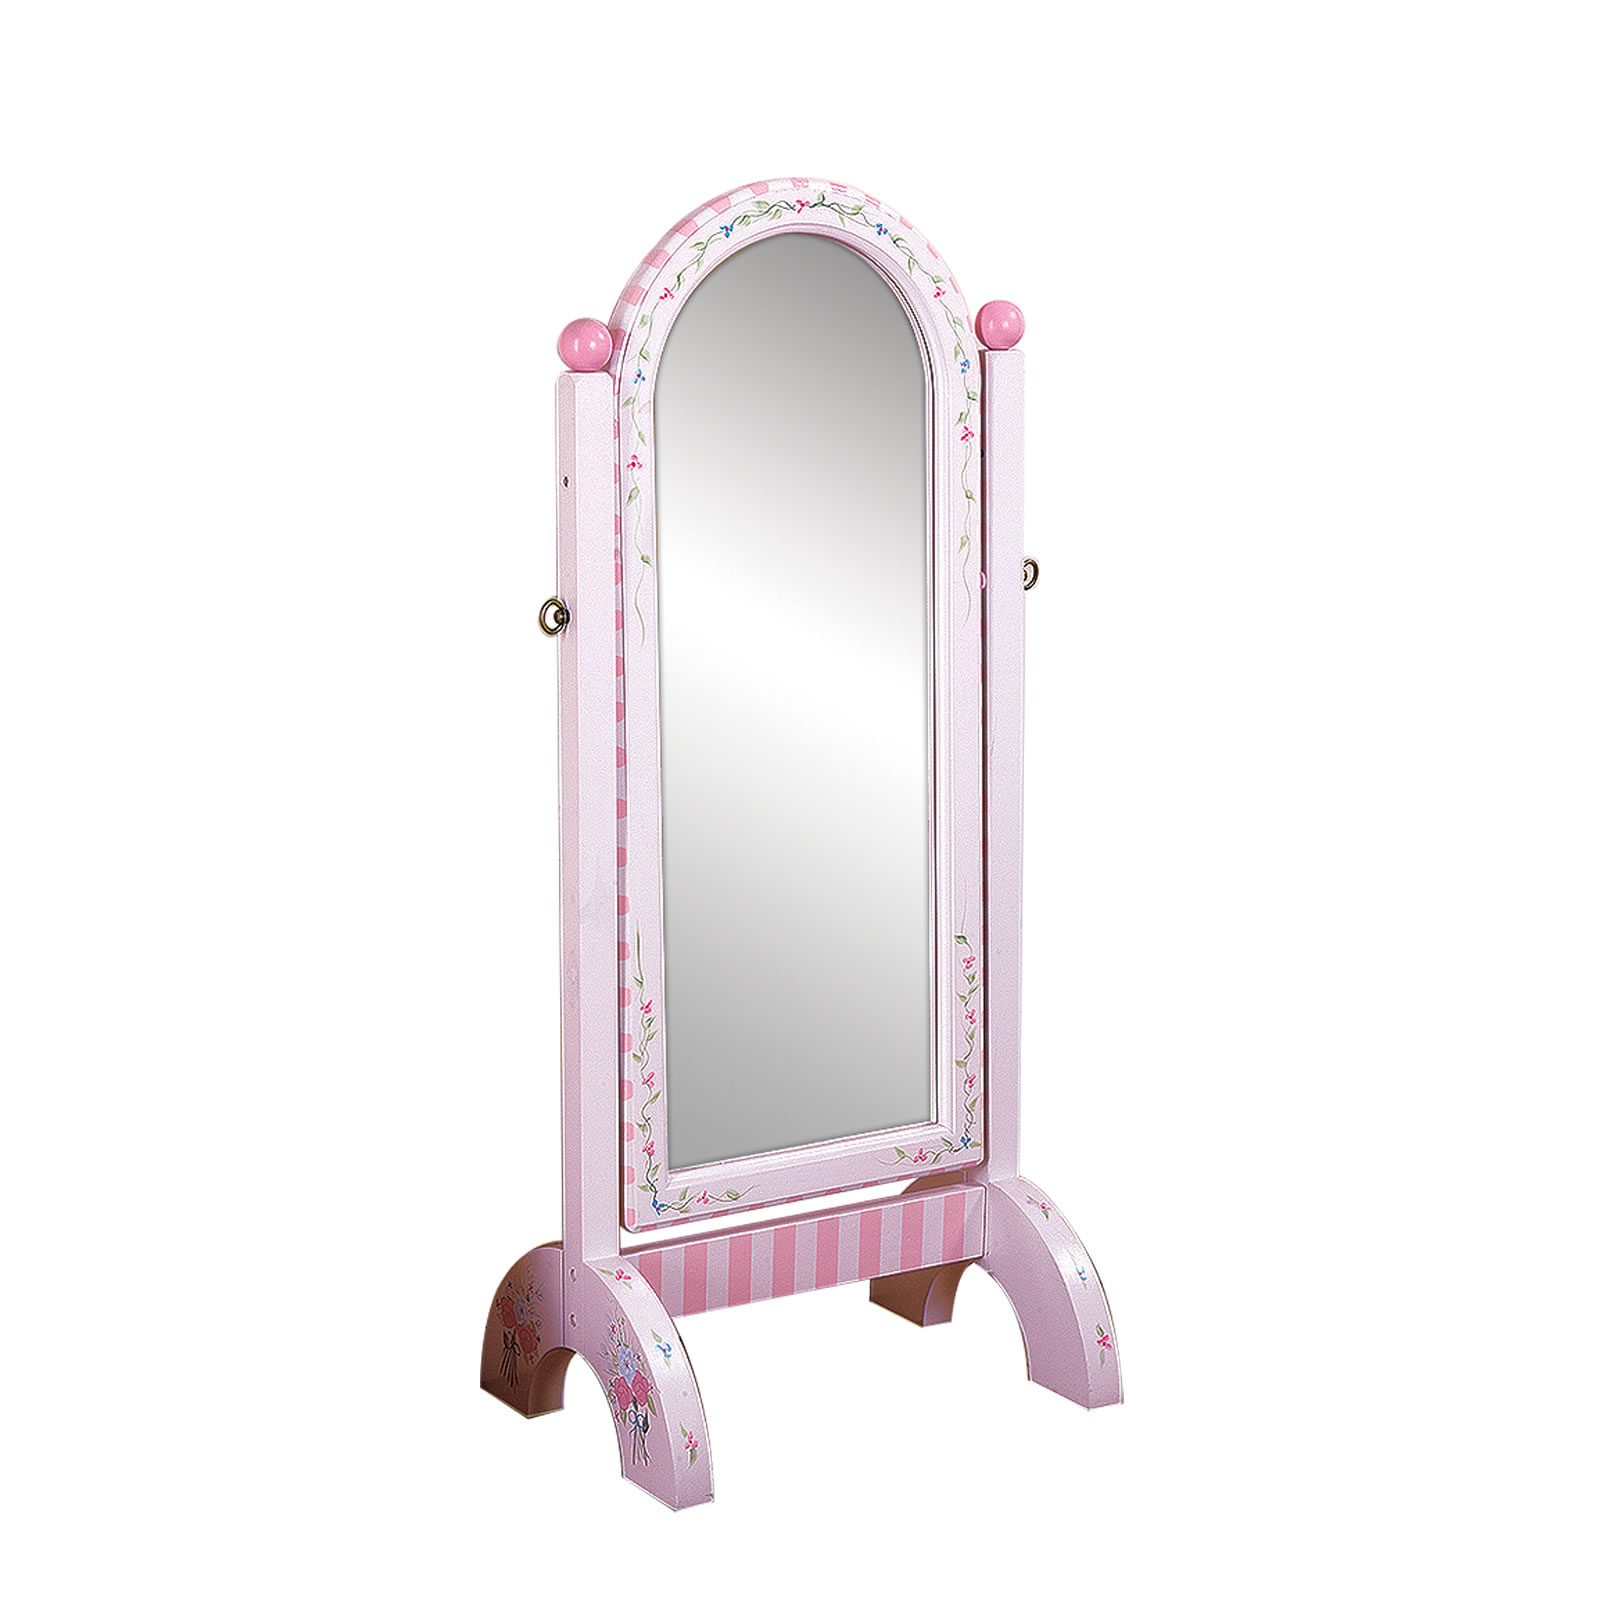 Bebelan si gemok mirror mirror hanging on the wall for Hanging mirror